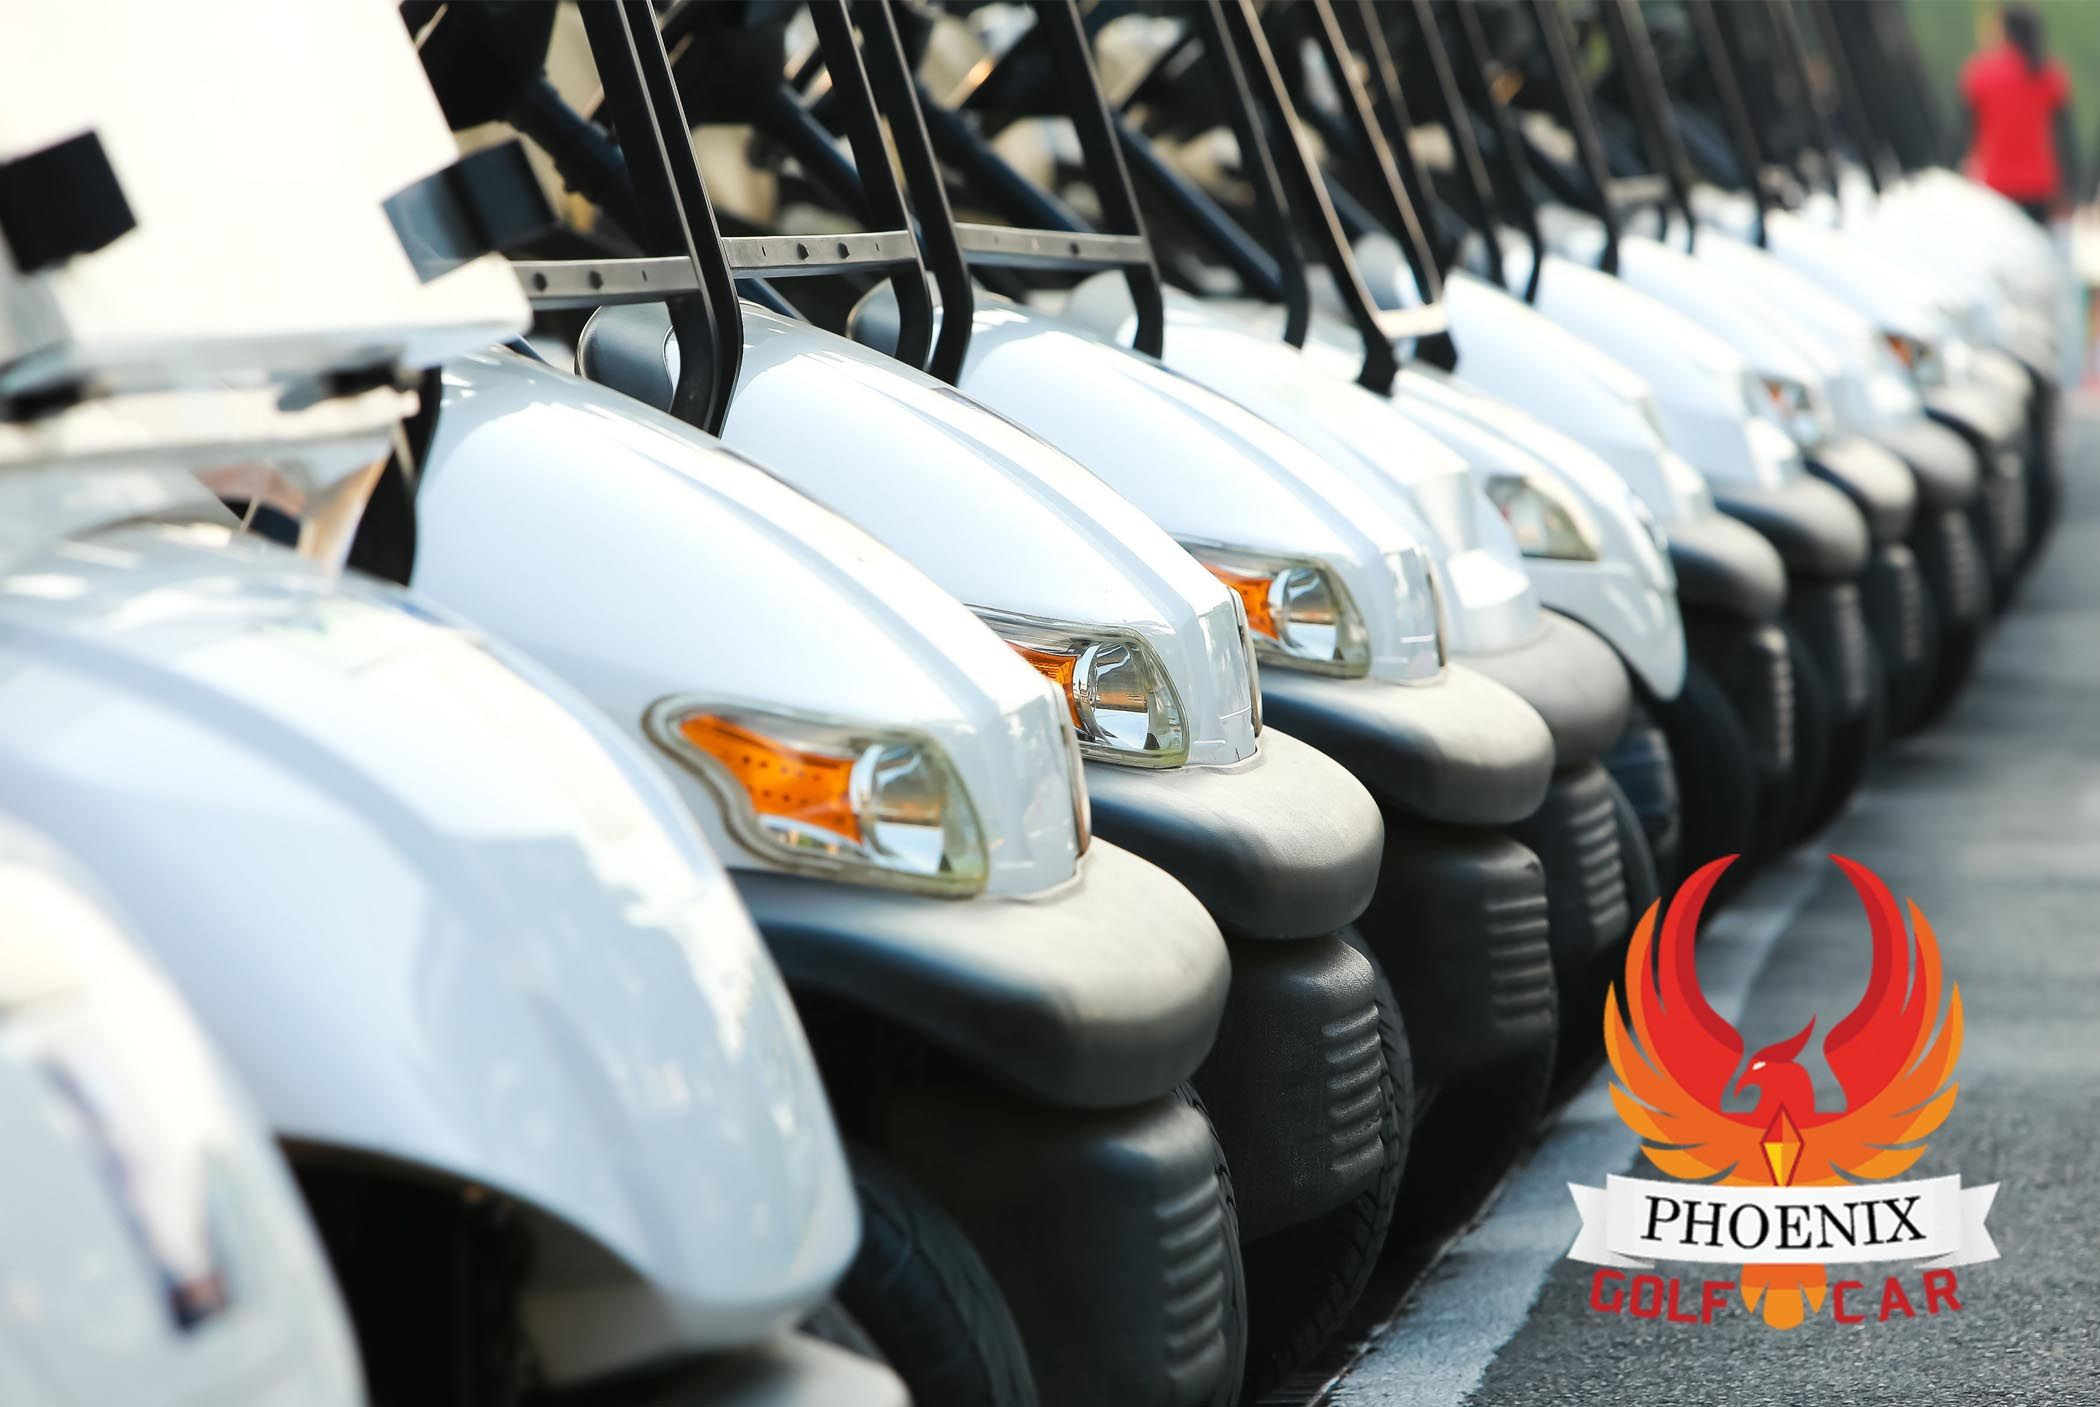 Rental & Leasing Renting a golf cart can make certain